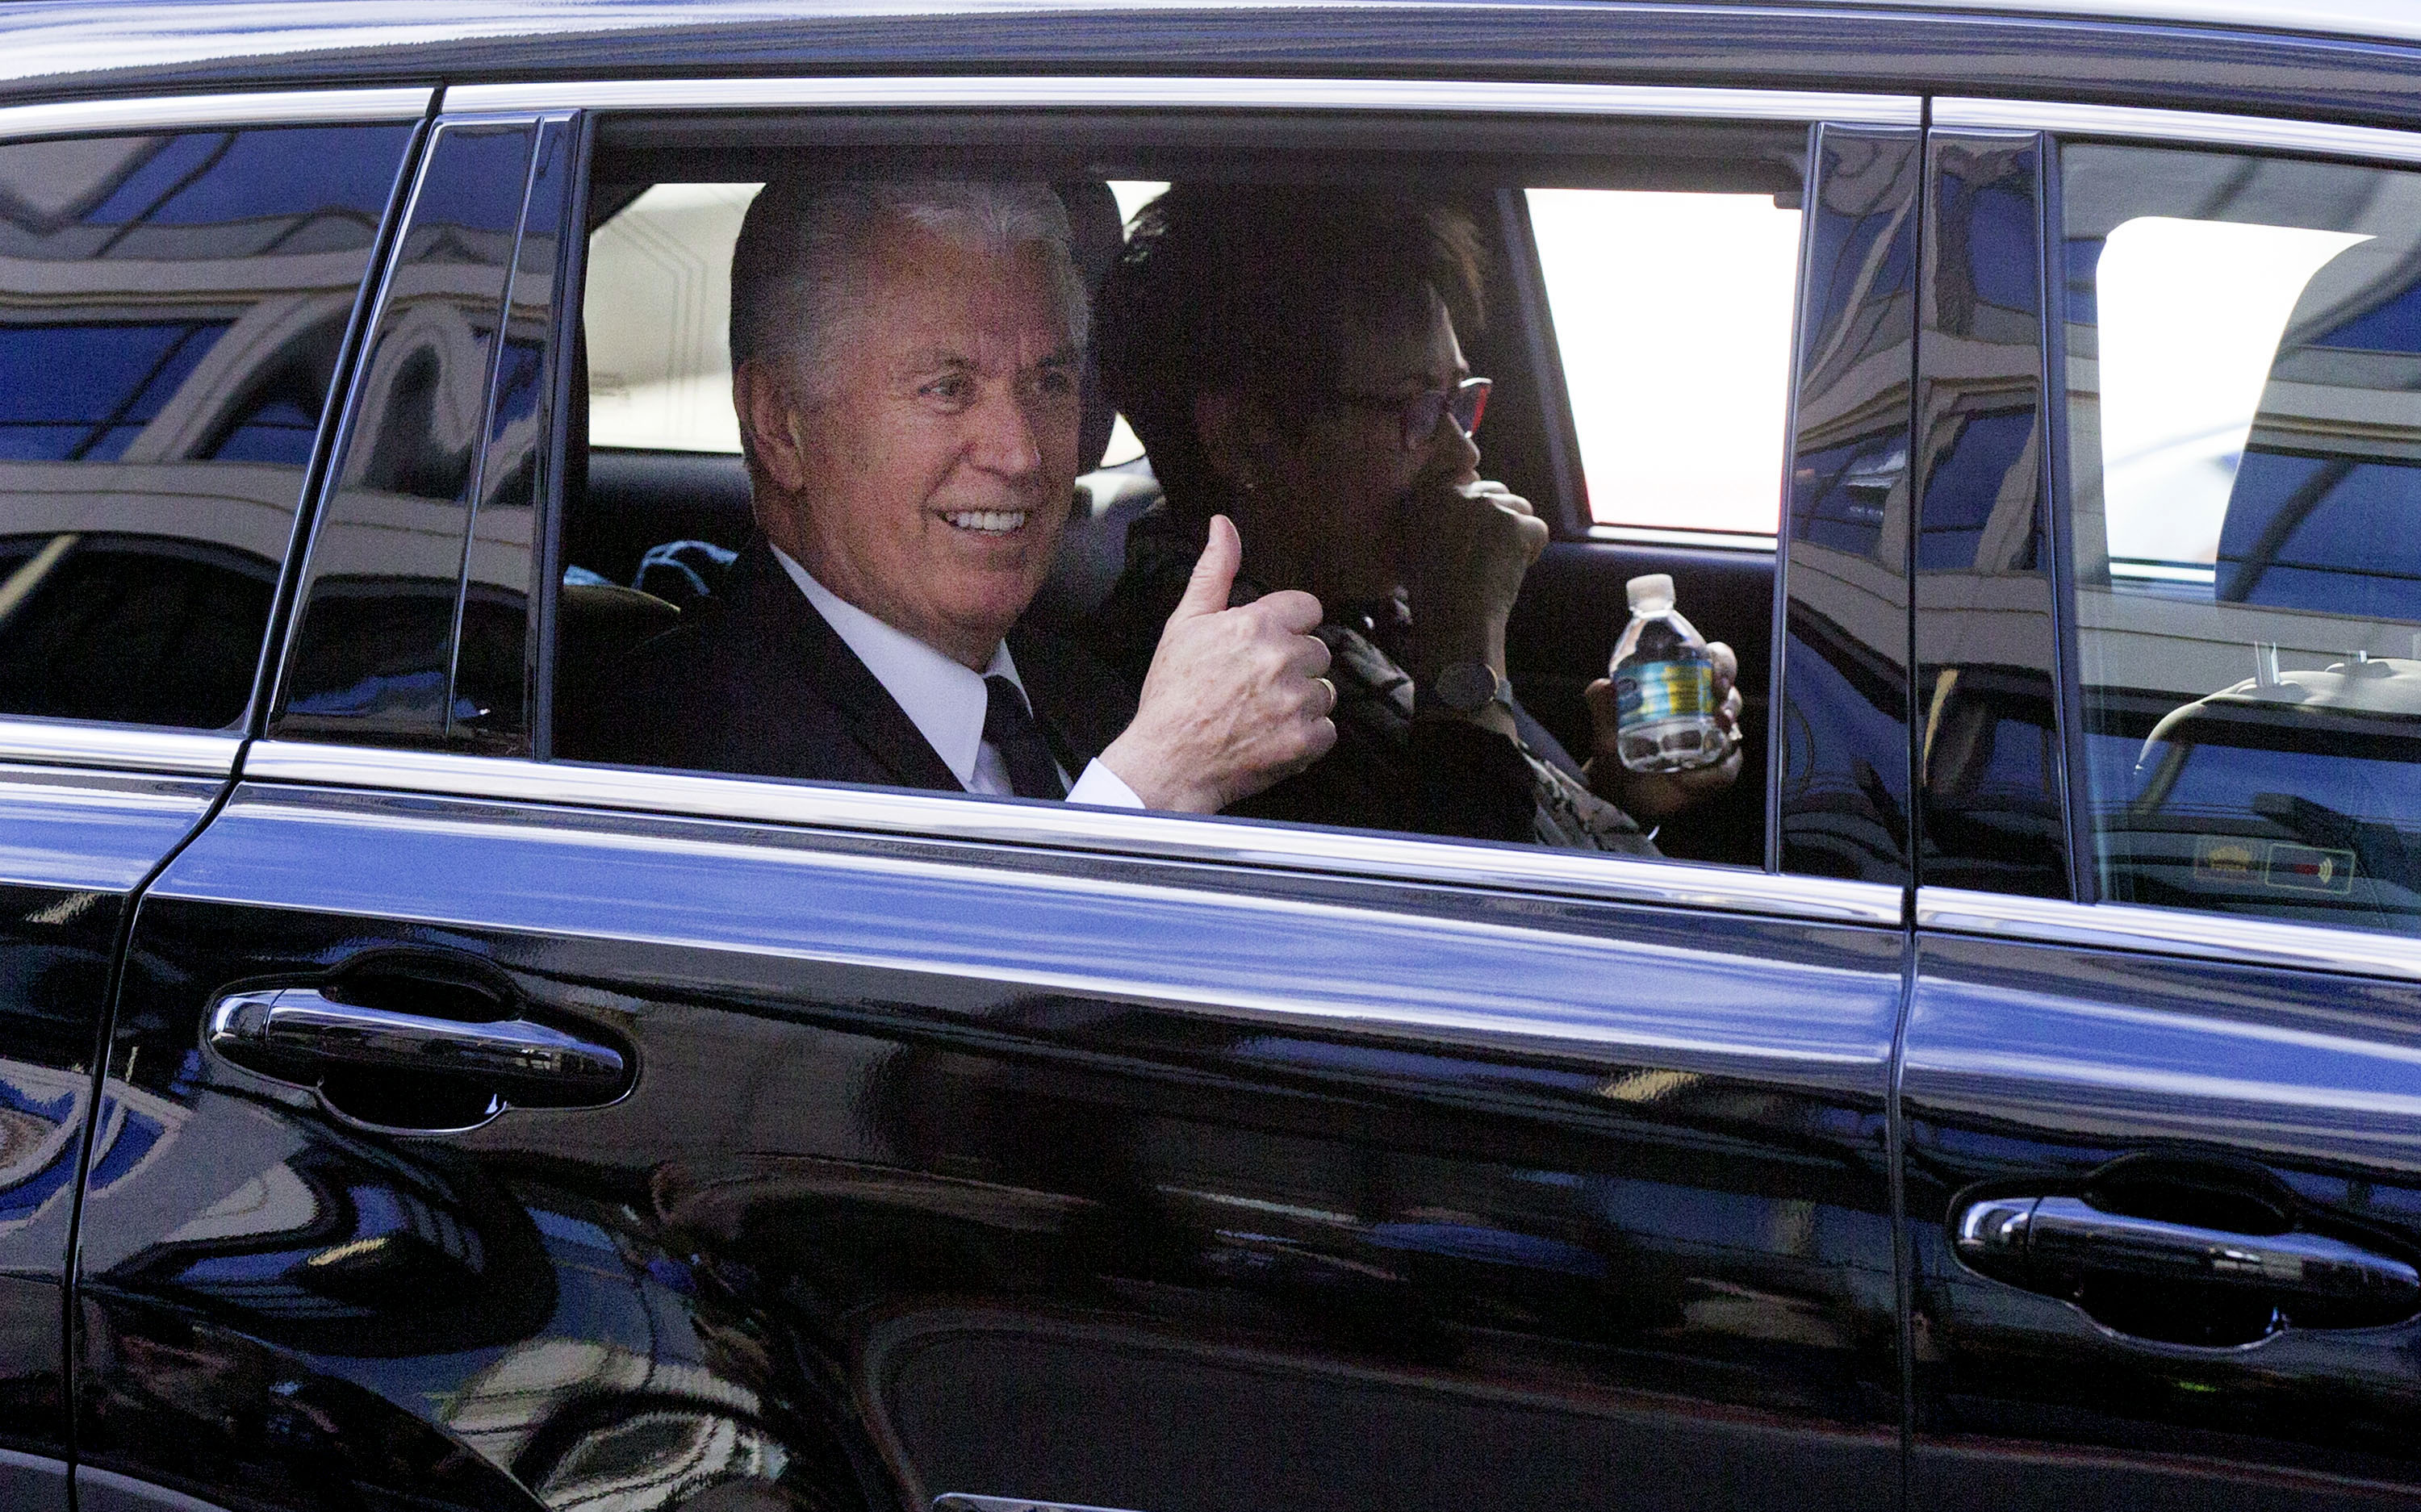 President Dieter F. Uchtdorf gives a thumbs-up sign to Boy Scouts as the funeral procession for LDS Church President Thomas S. Monson makes its way to the Salt Lake City Cemetery on Friday, Jan. 12, 2018. President Uchtdorf was a counselor to President Monson.